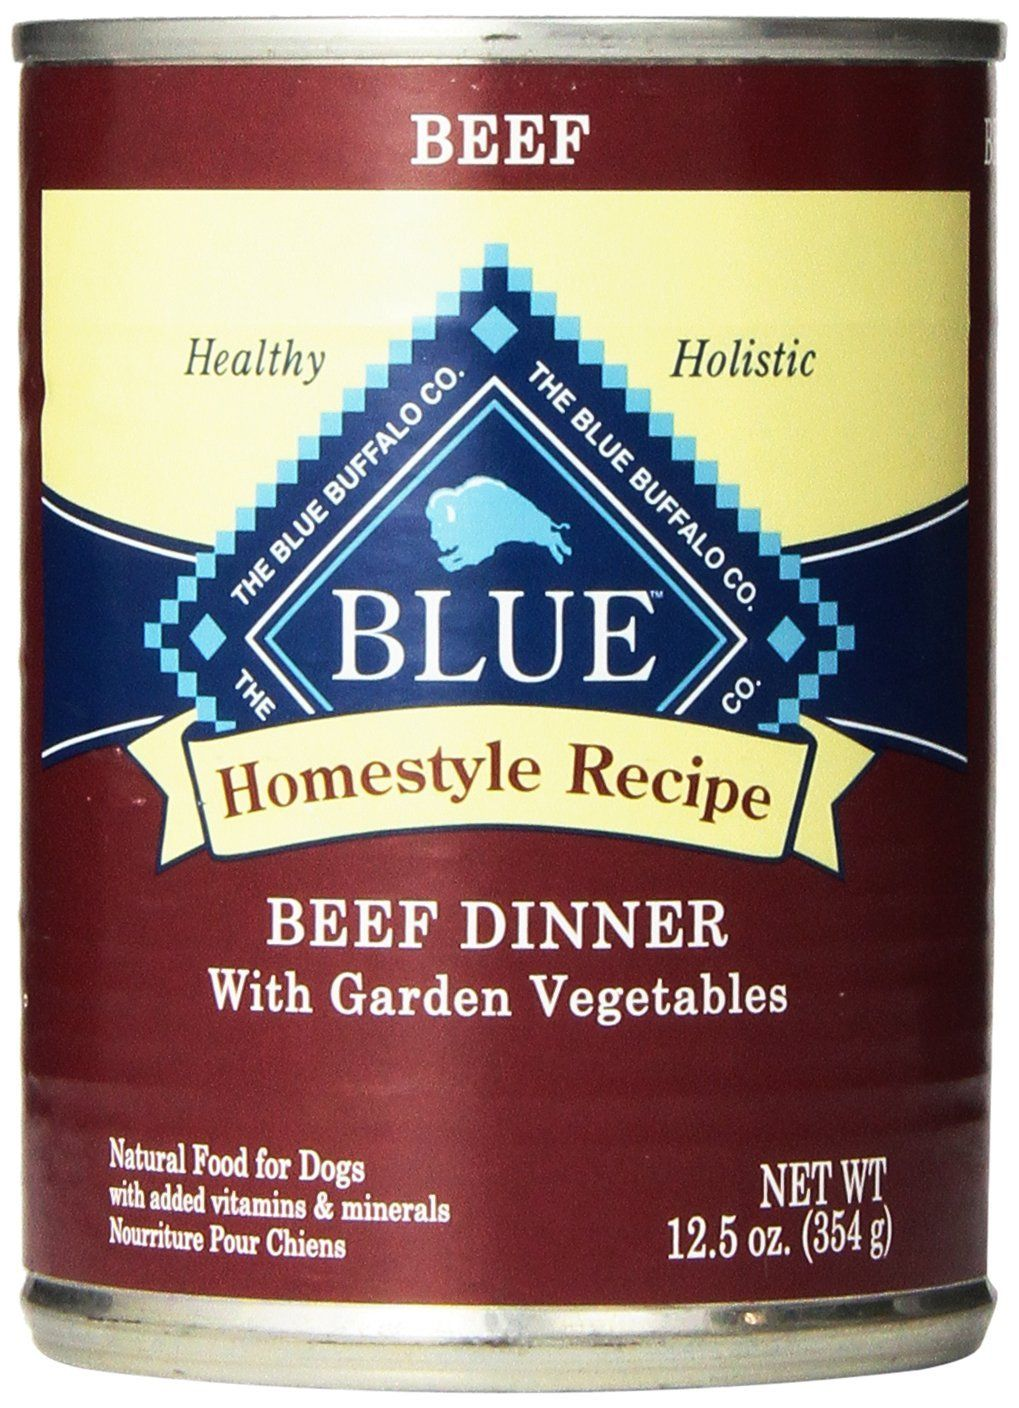 Blue buffalo canned dog food beef dinner pack of 12 125